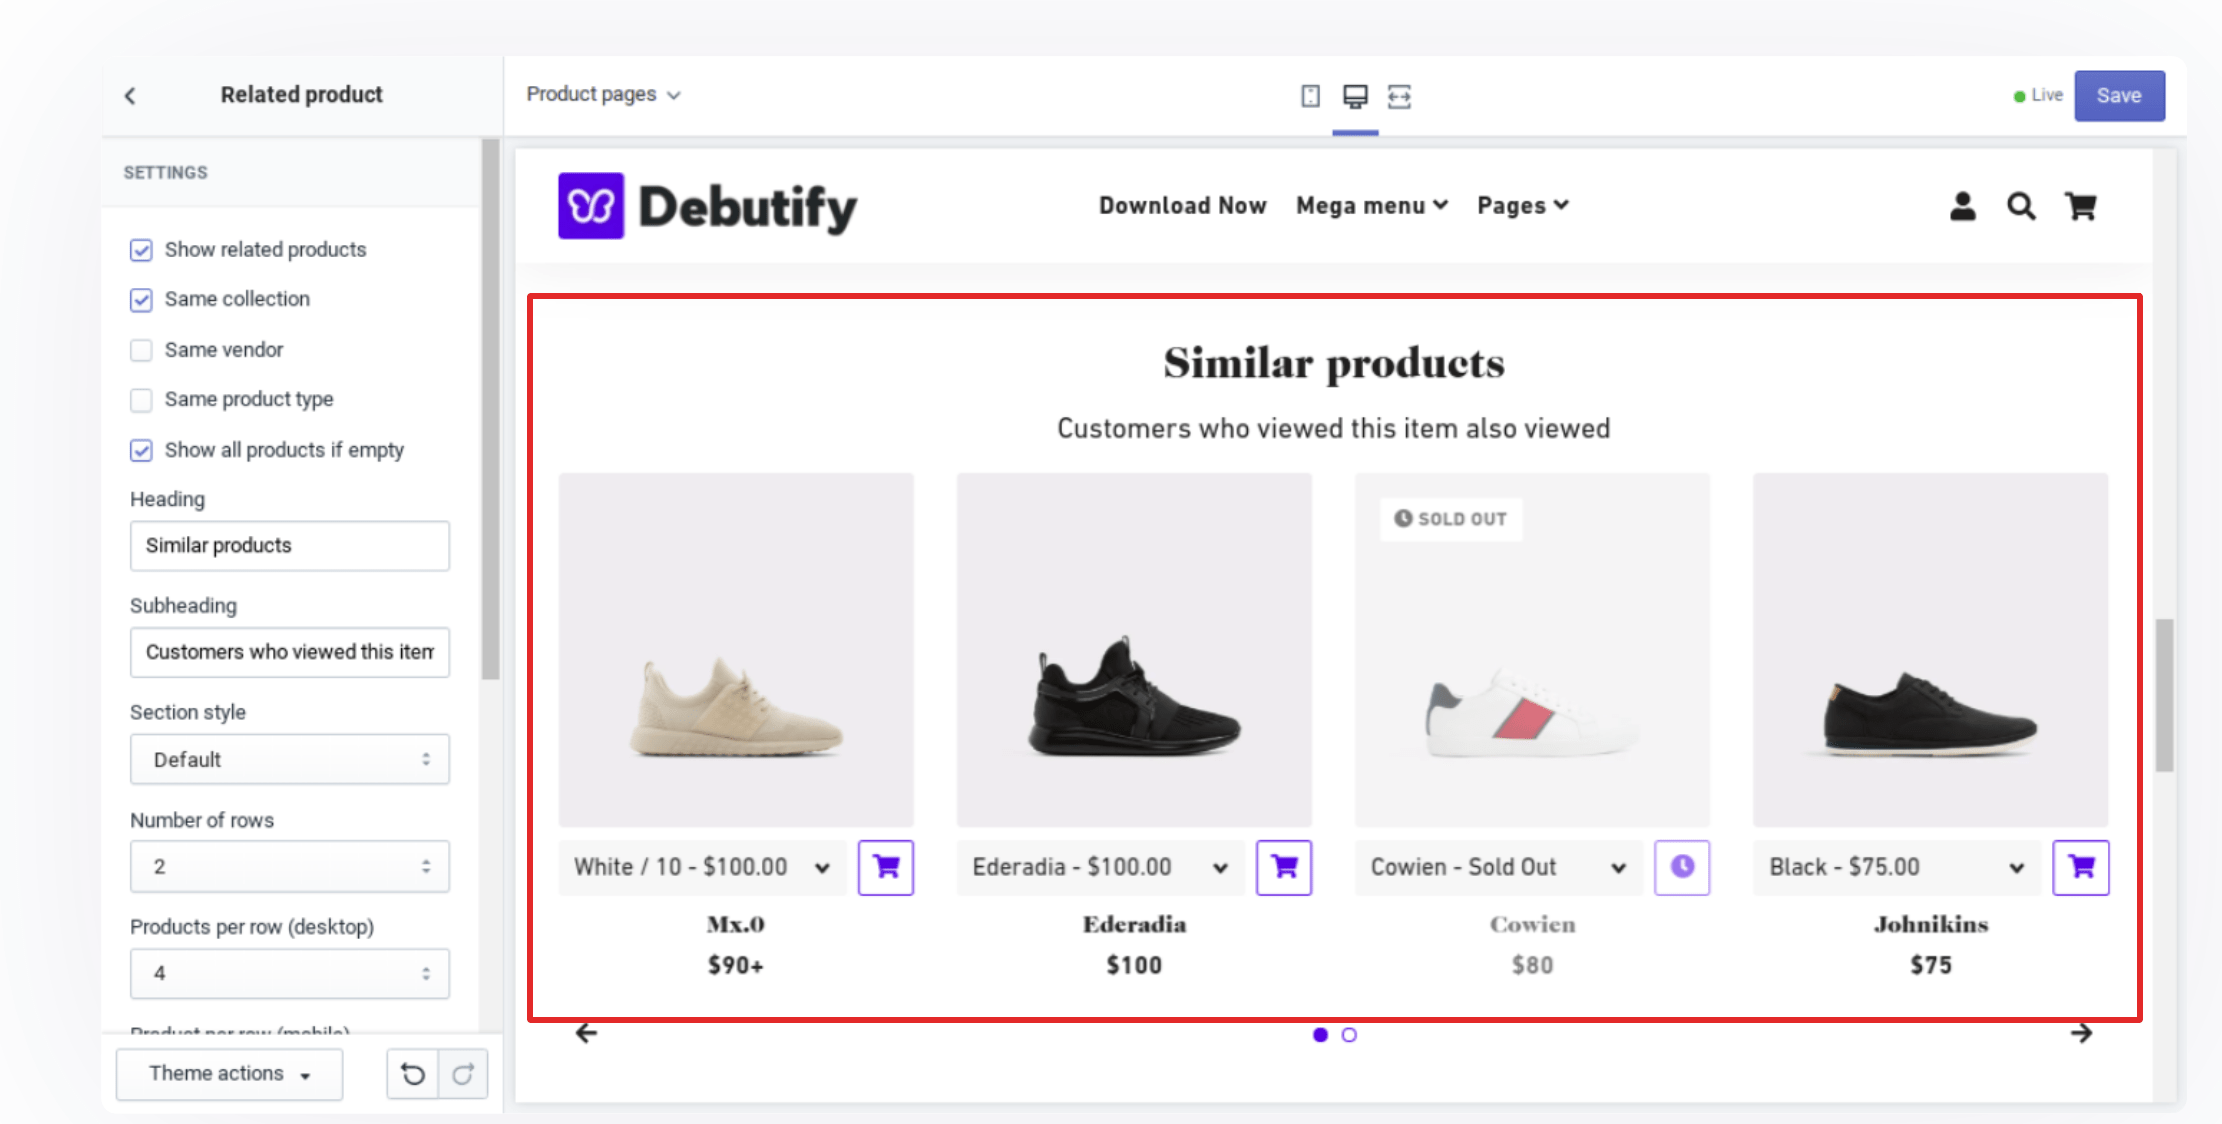 Debutify features and pricing